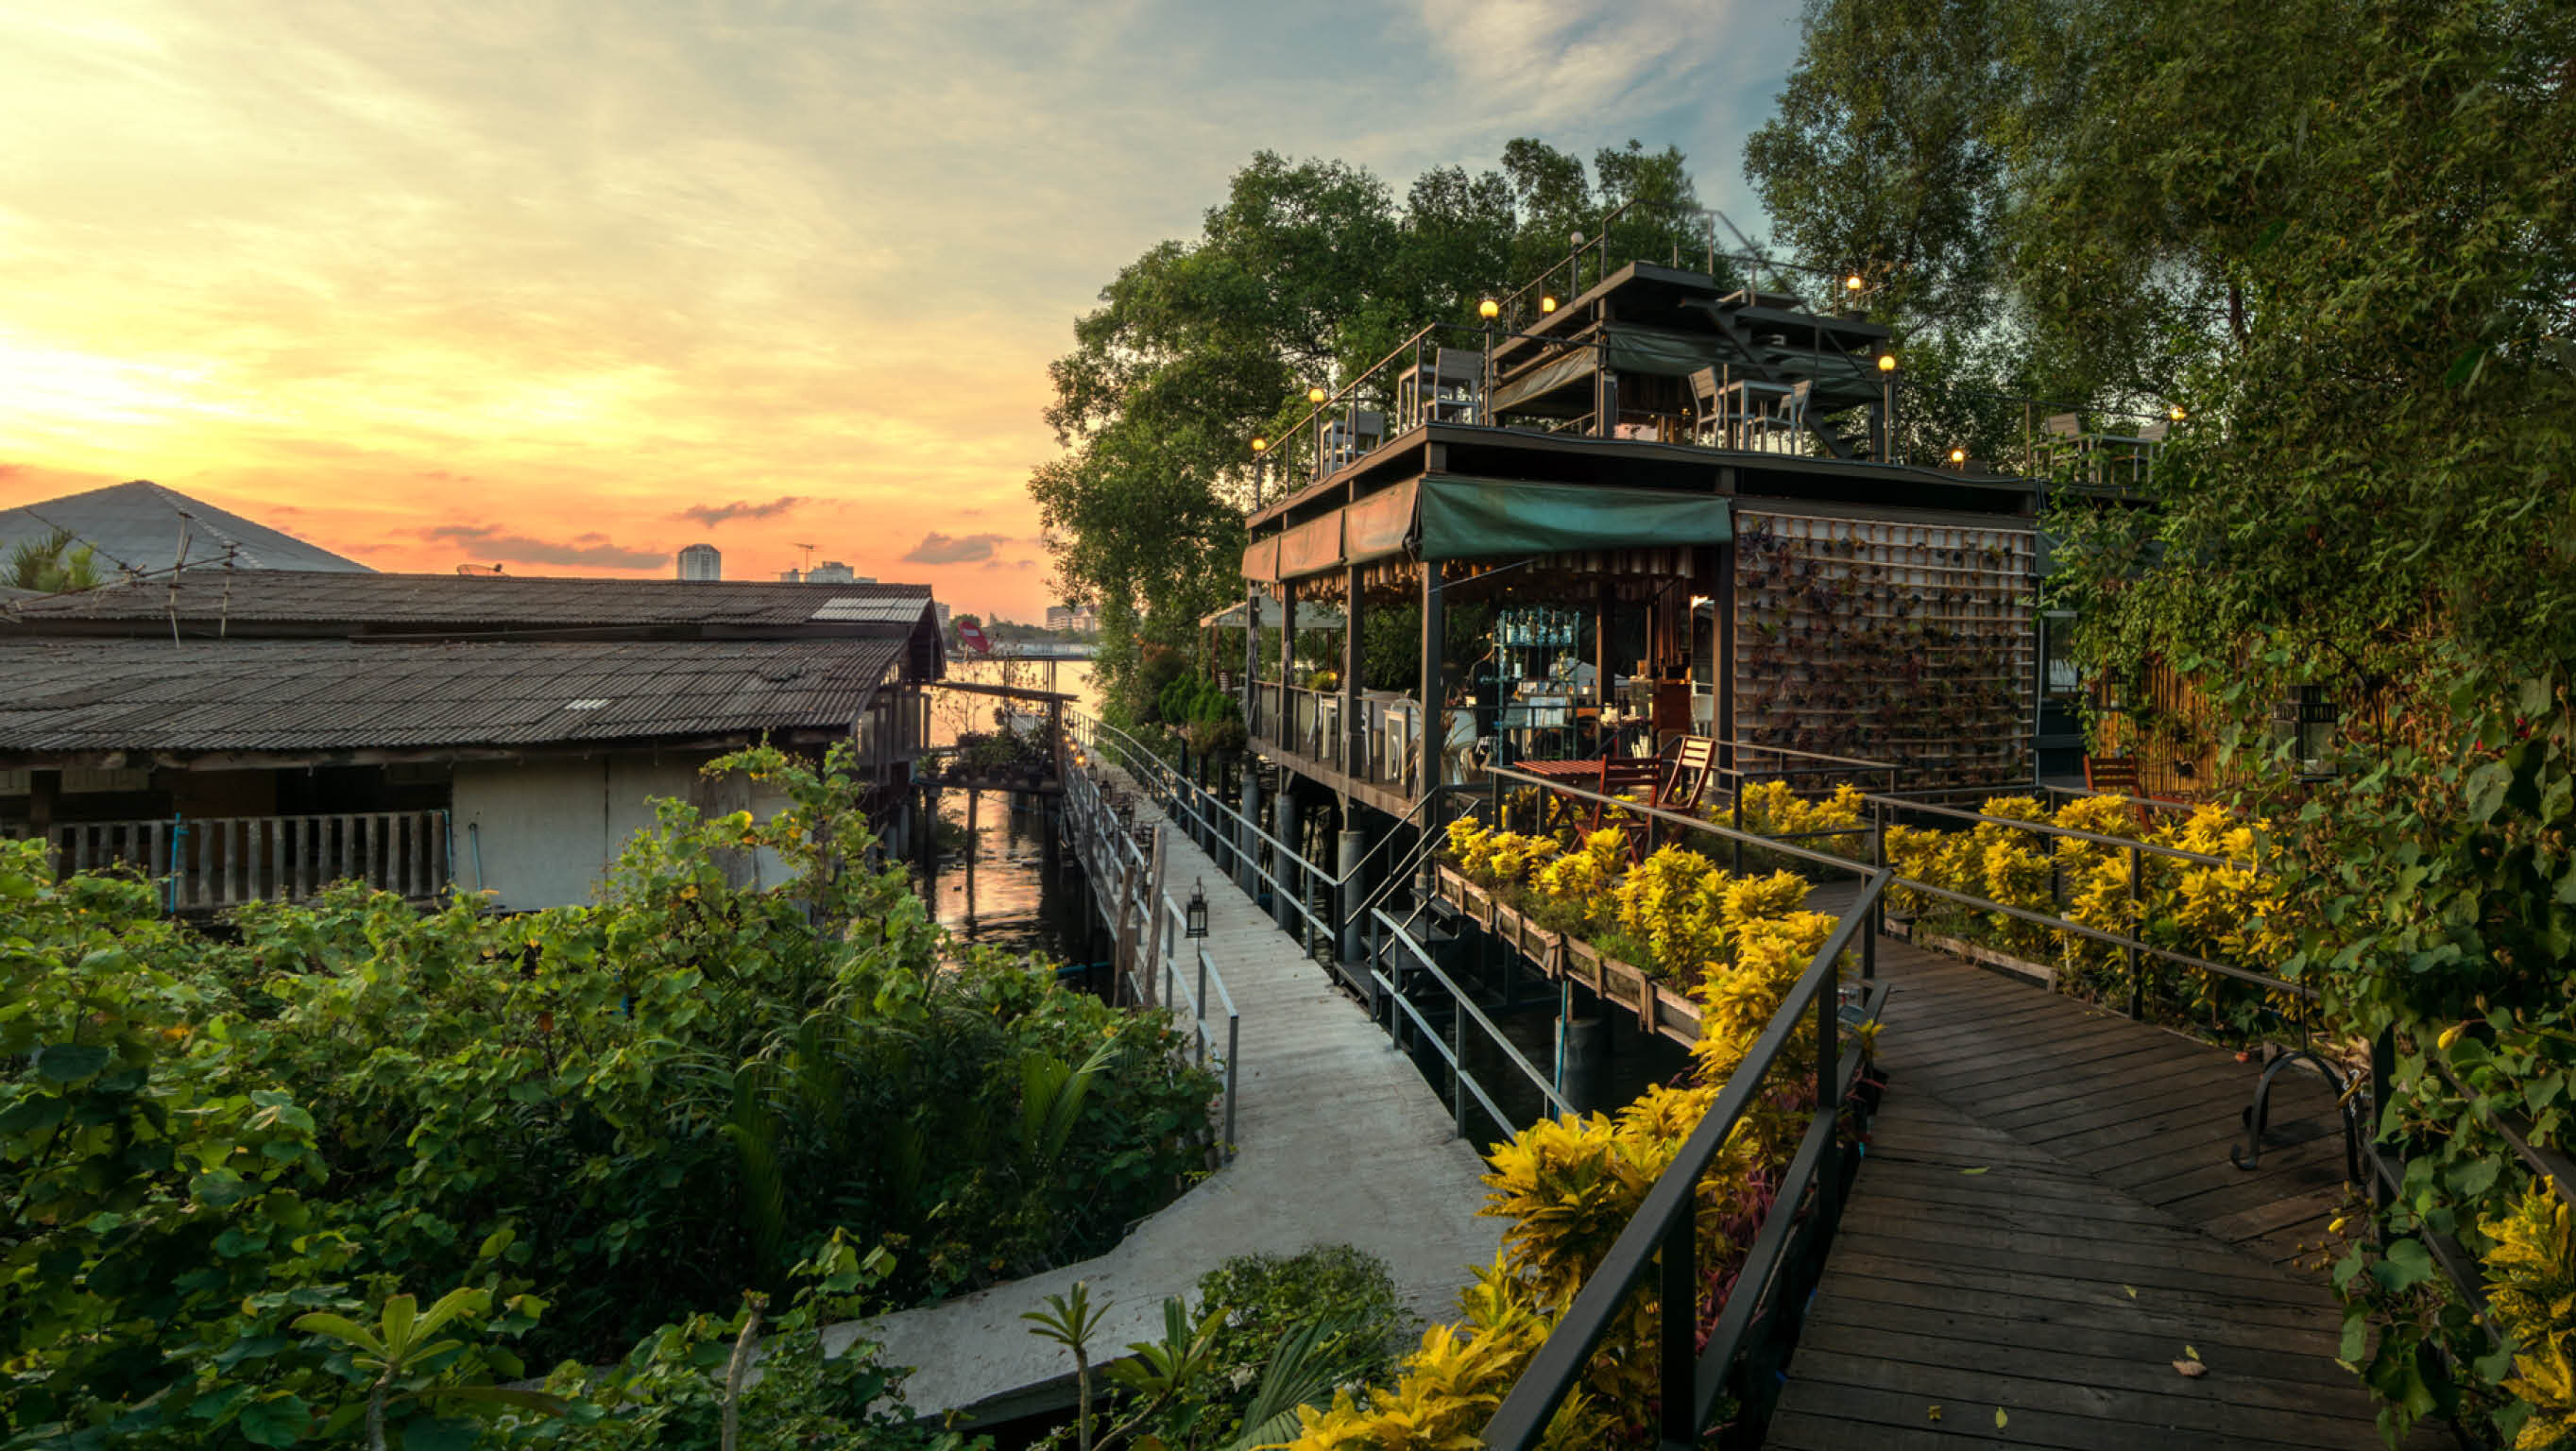 Bangkok's best places to find inner peace and recharge yourself